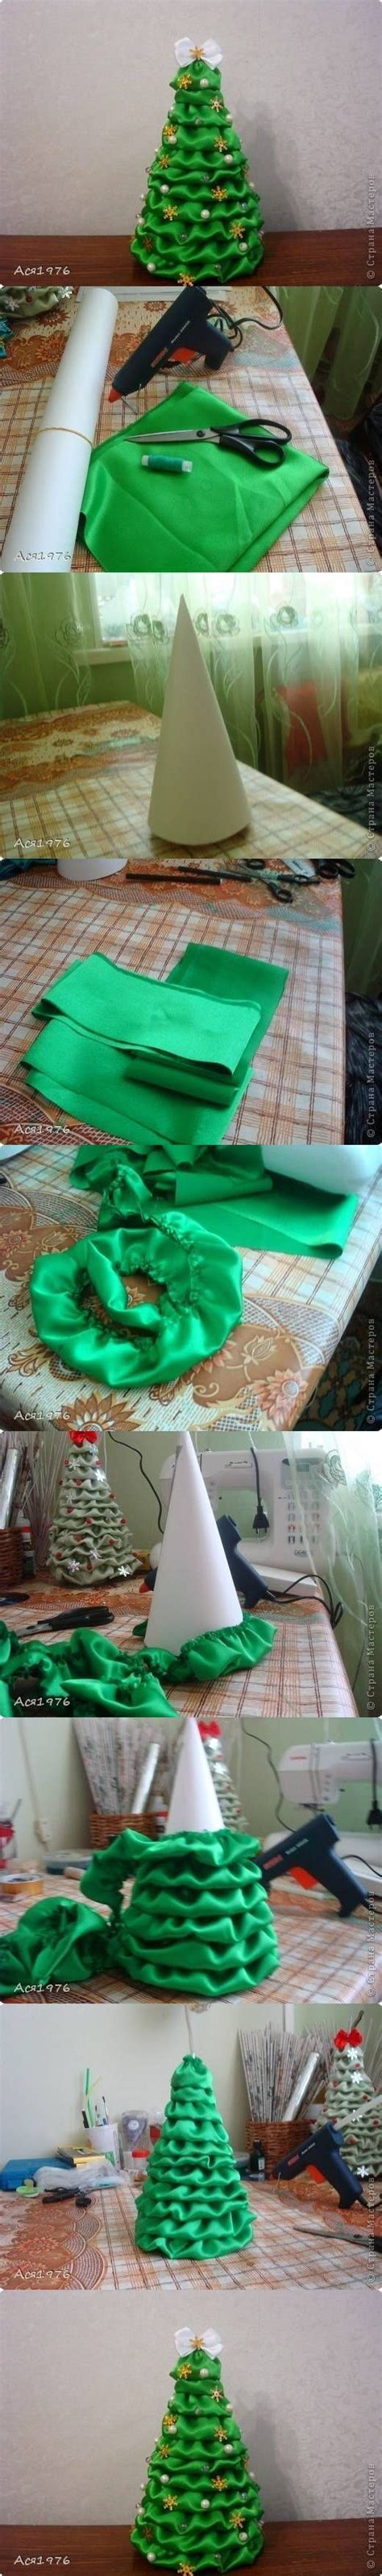 diy fabric christmas tree diy projects usefuldiy com